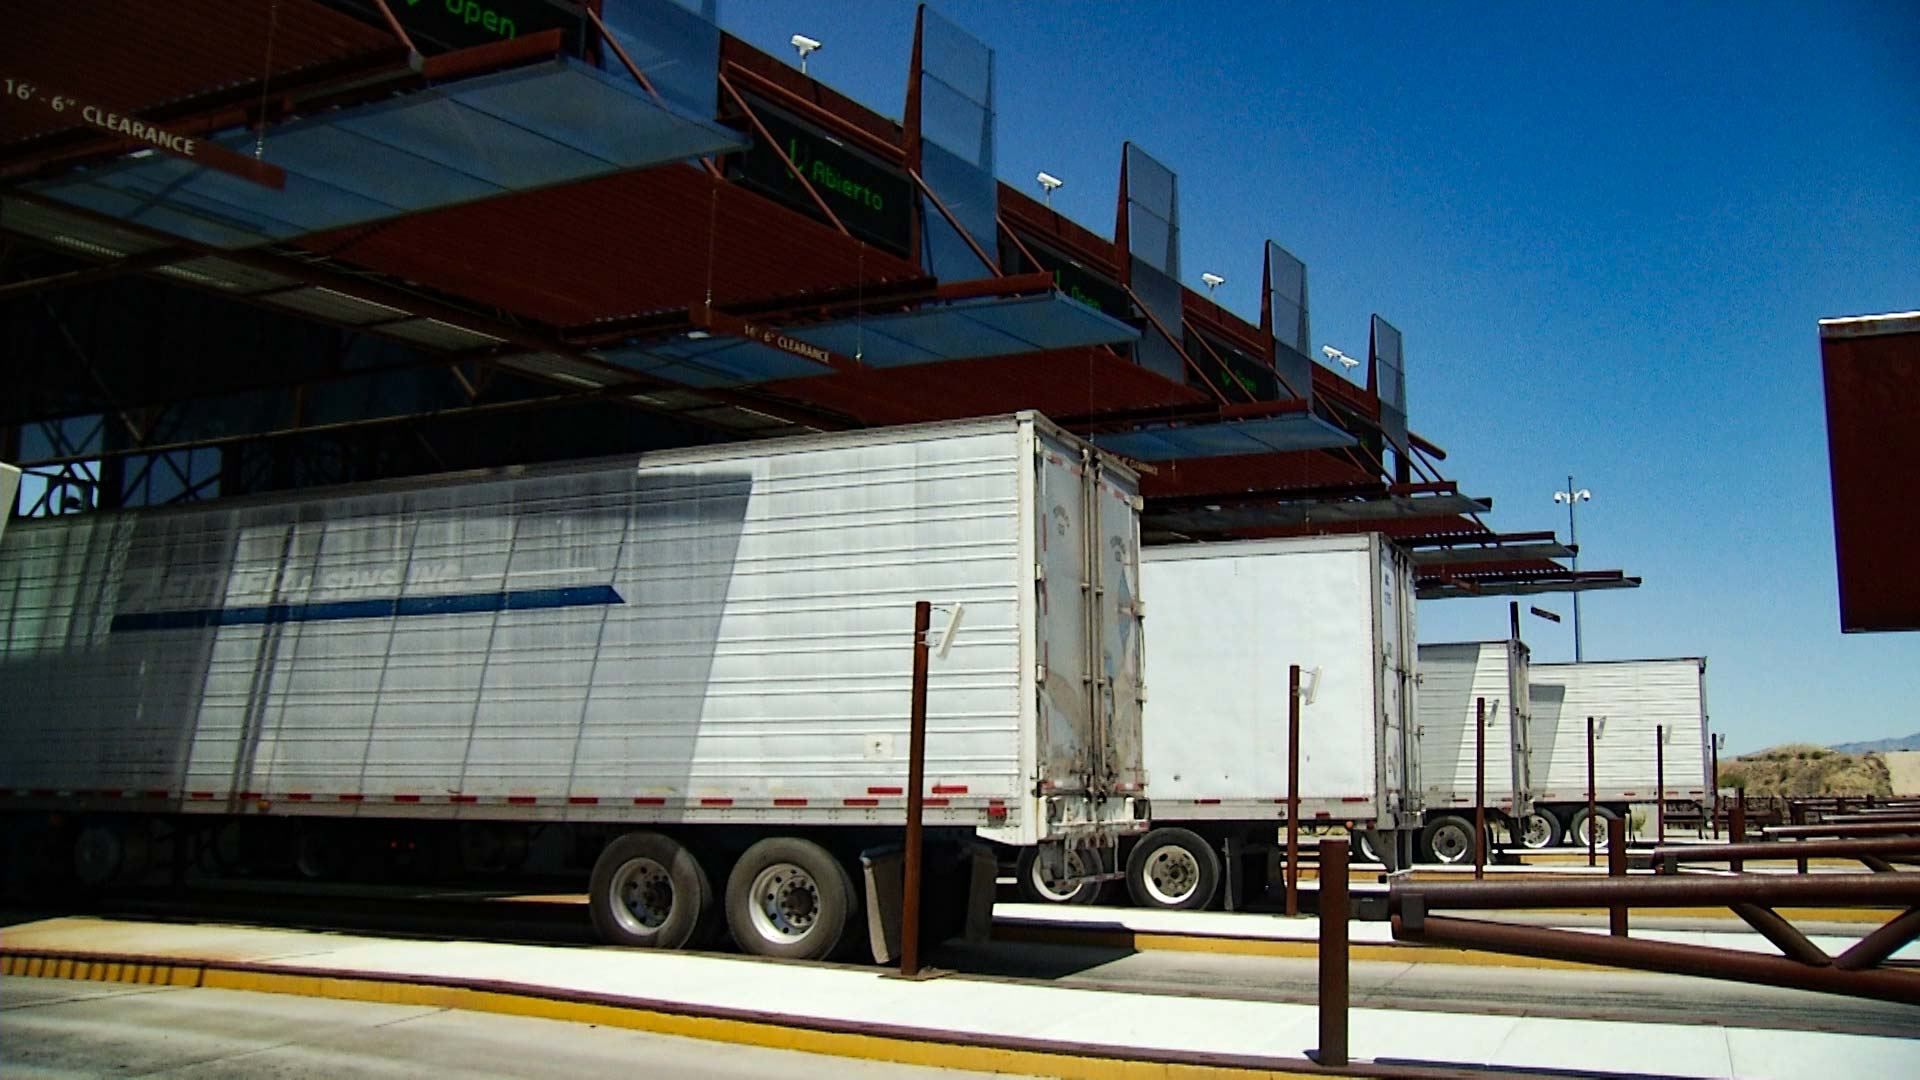 Trucks carrying cargo at the Mariposa Port of Entry on the border of Arizona and Sonora.